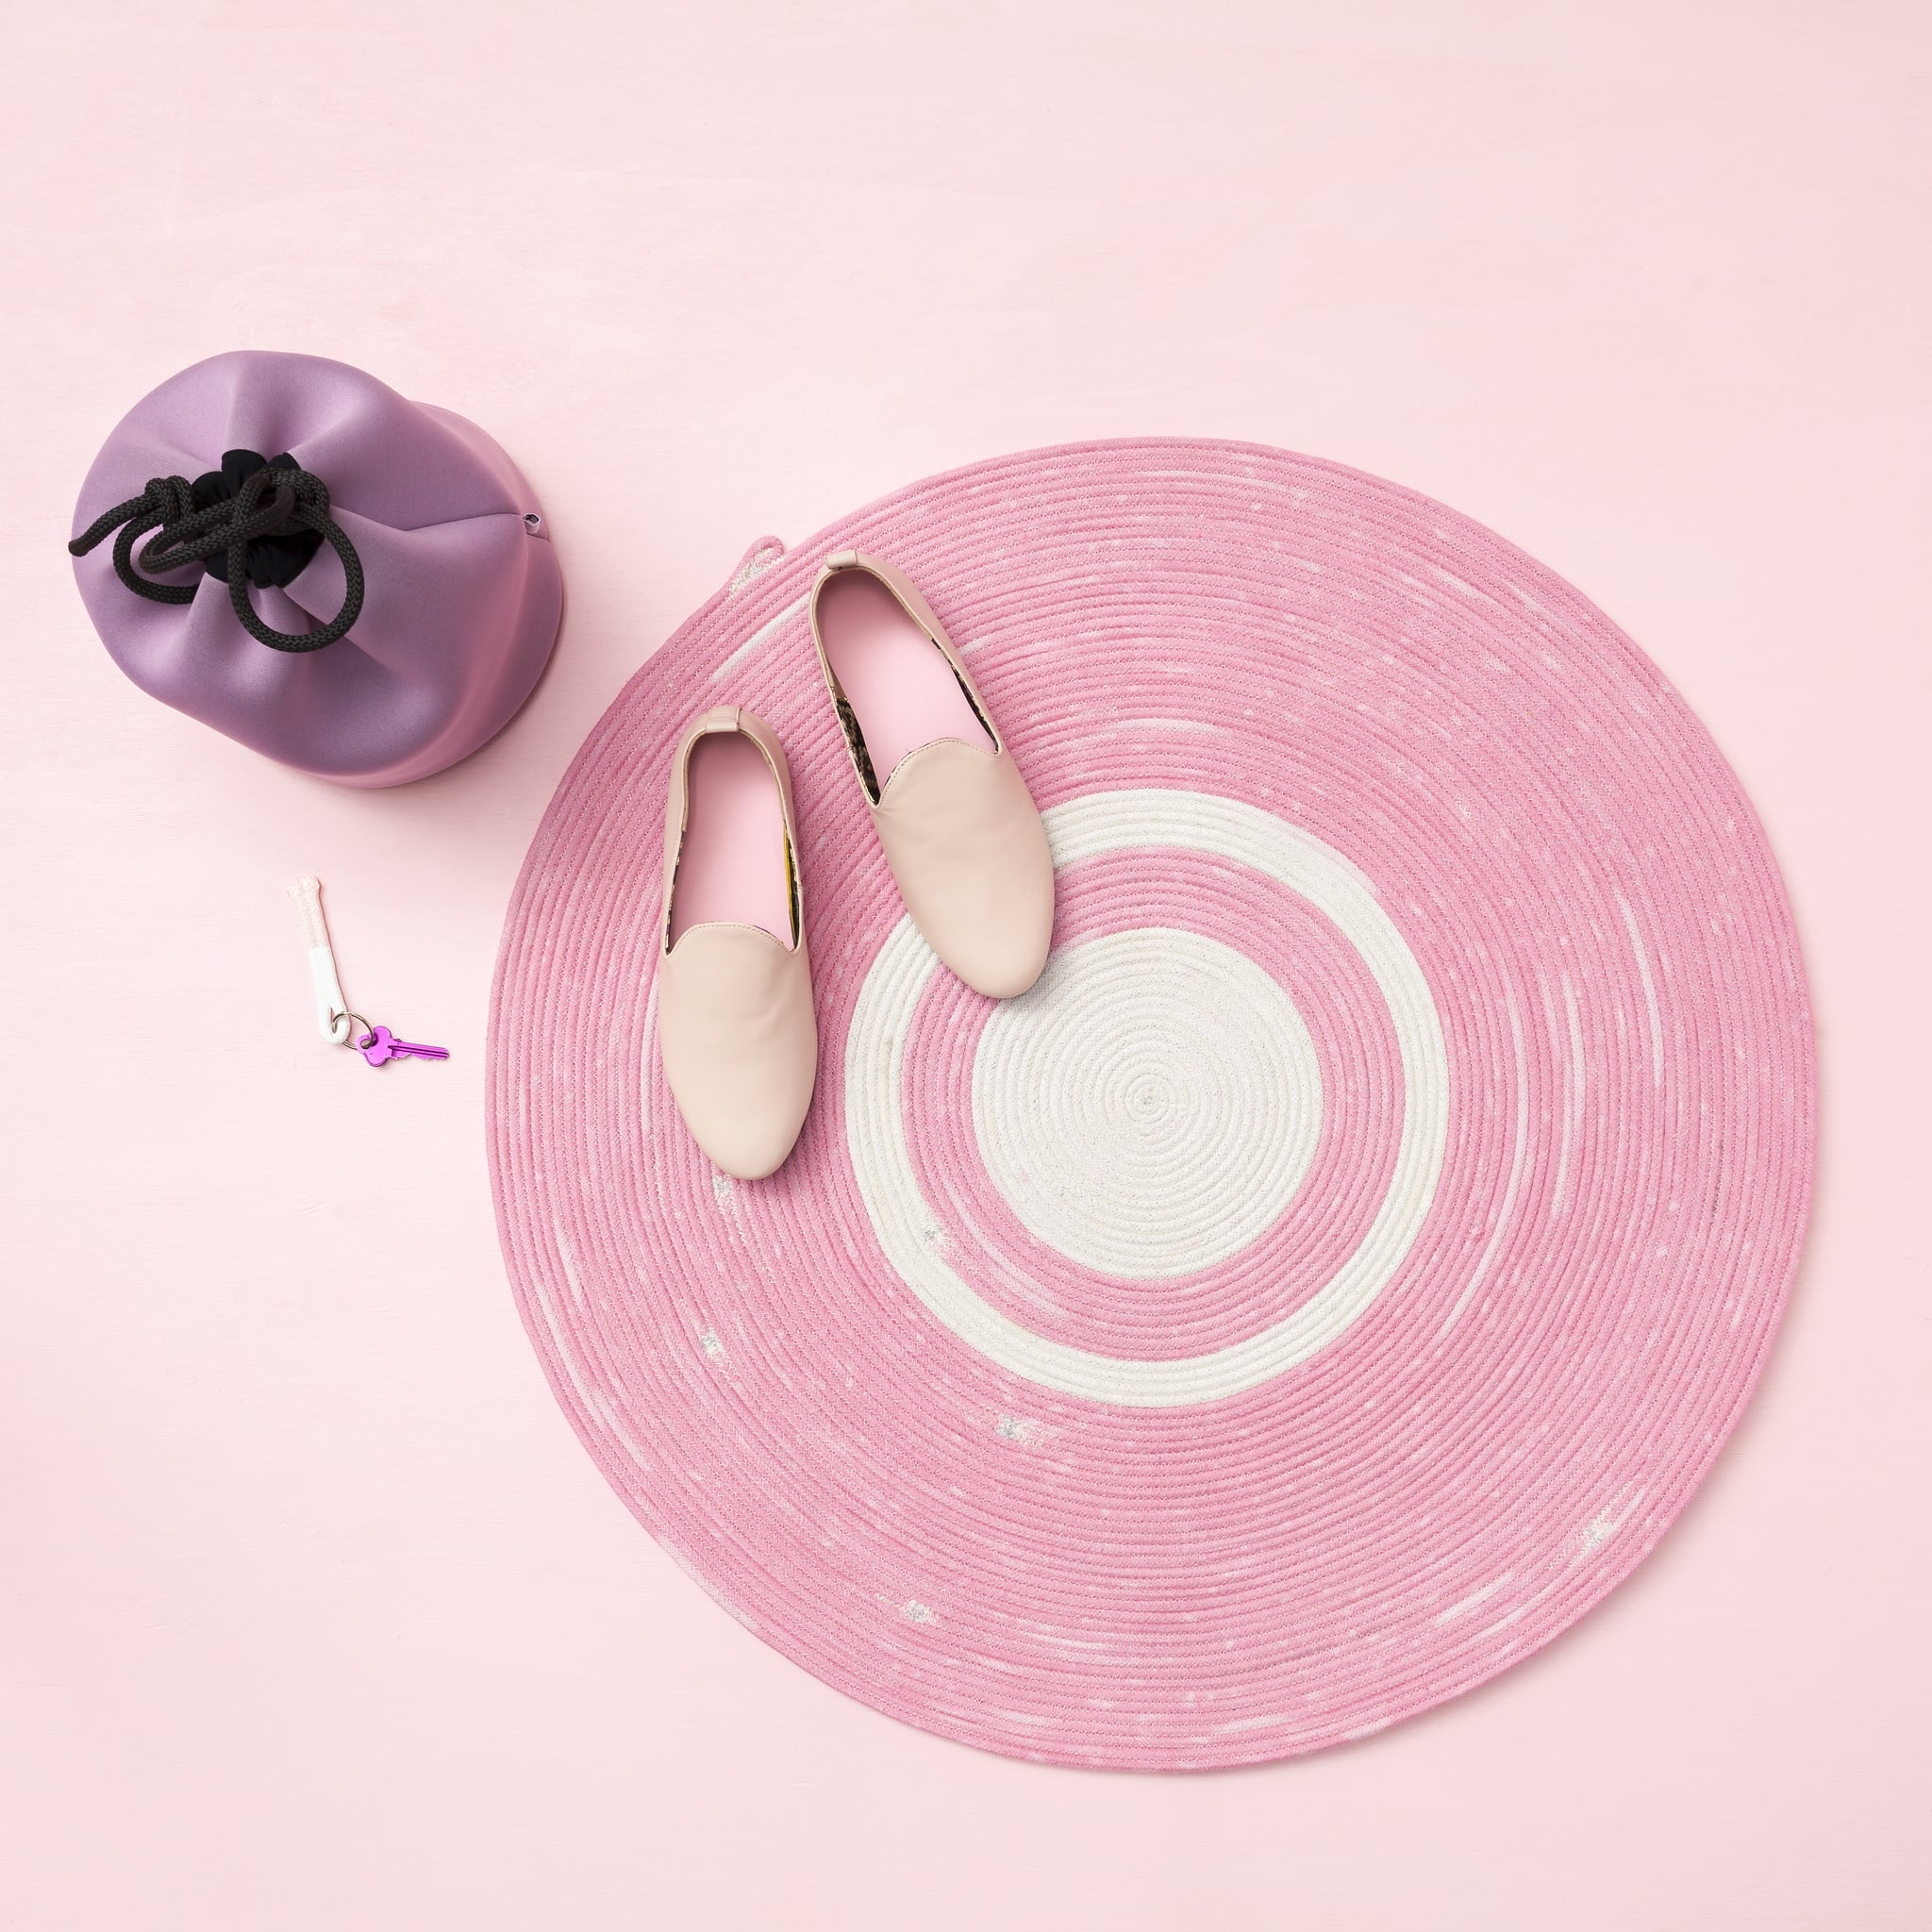 Inject Some Millennial Pink into Your Home With This DIY Floor Rug